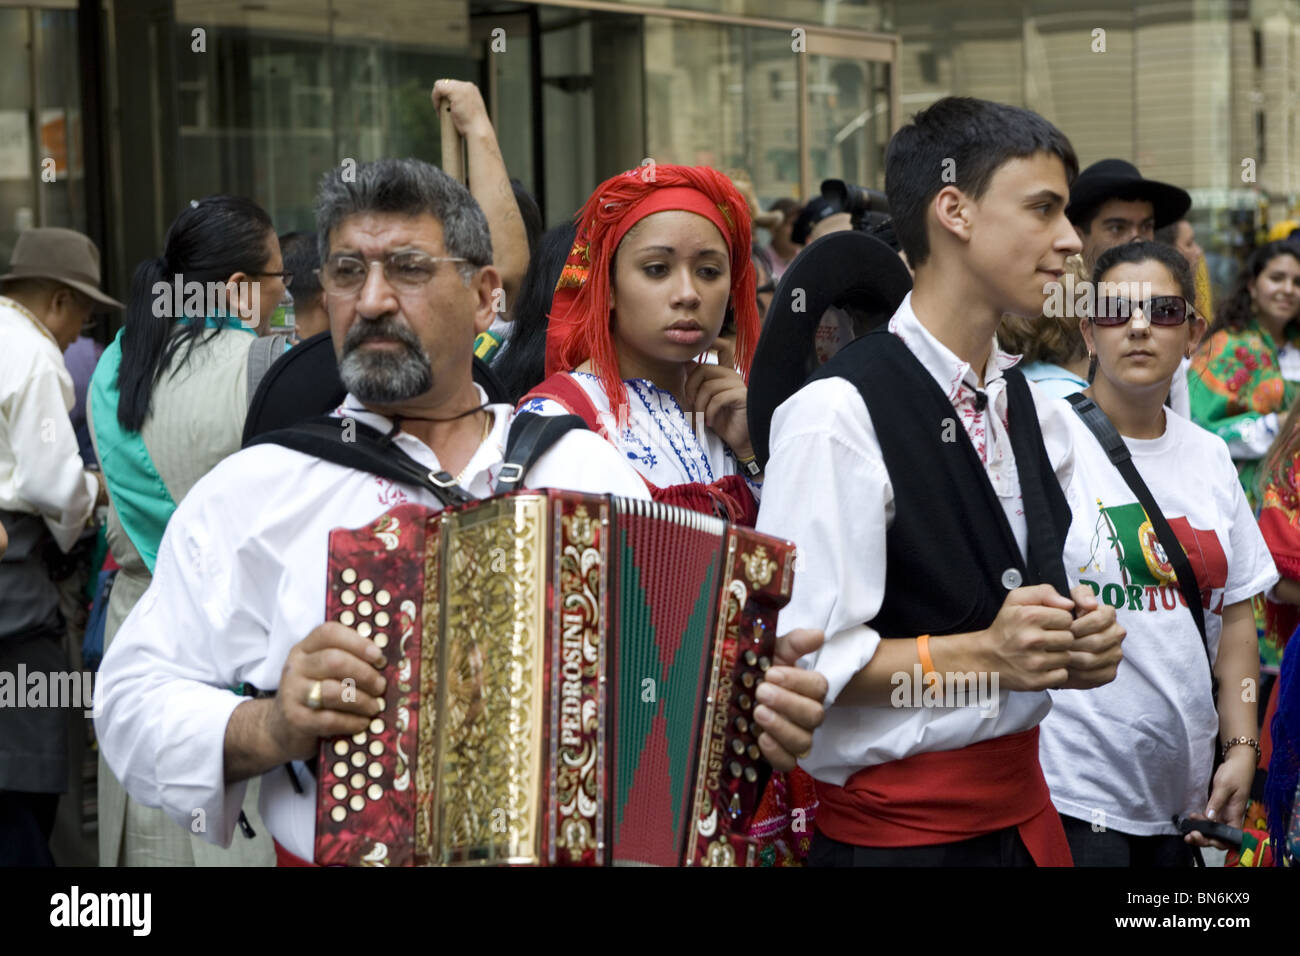 International Immigrants Parade, NYC: Portuguese Americans perform at the parade - Stock Image